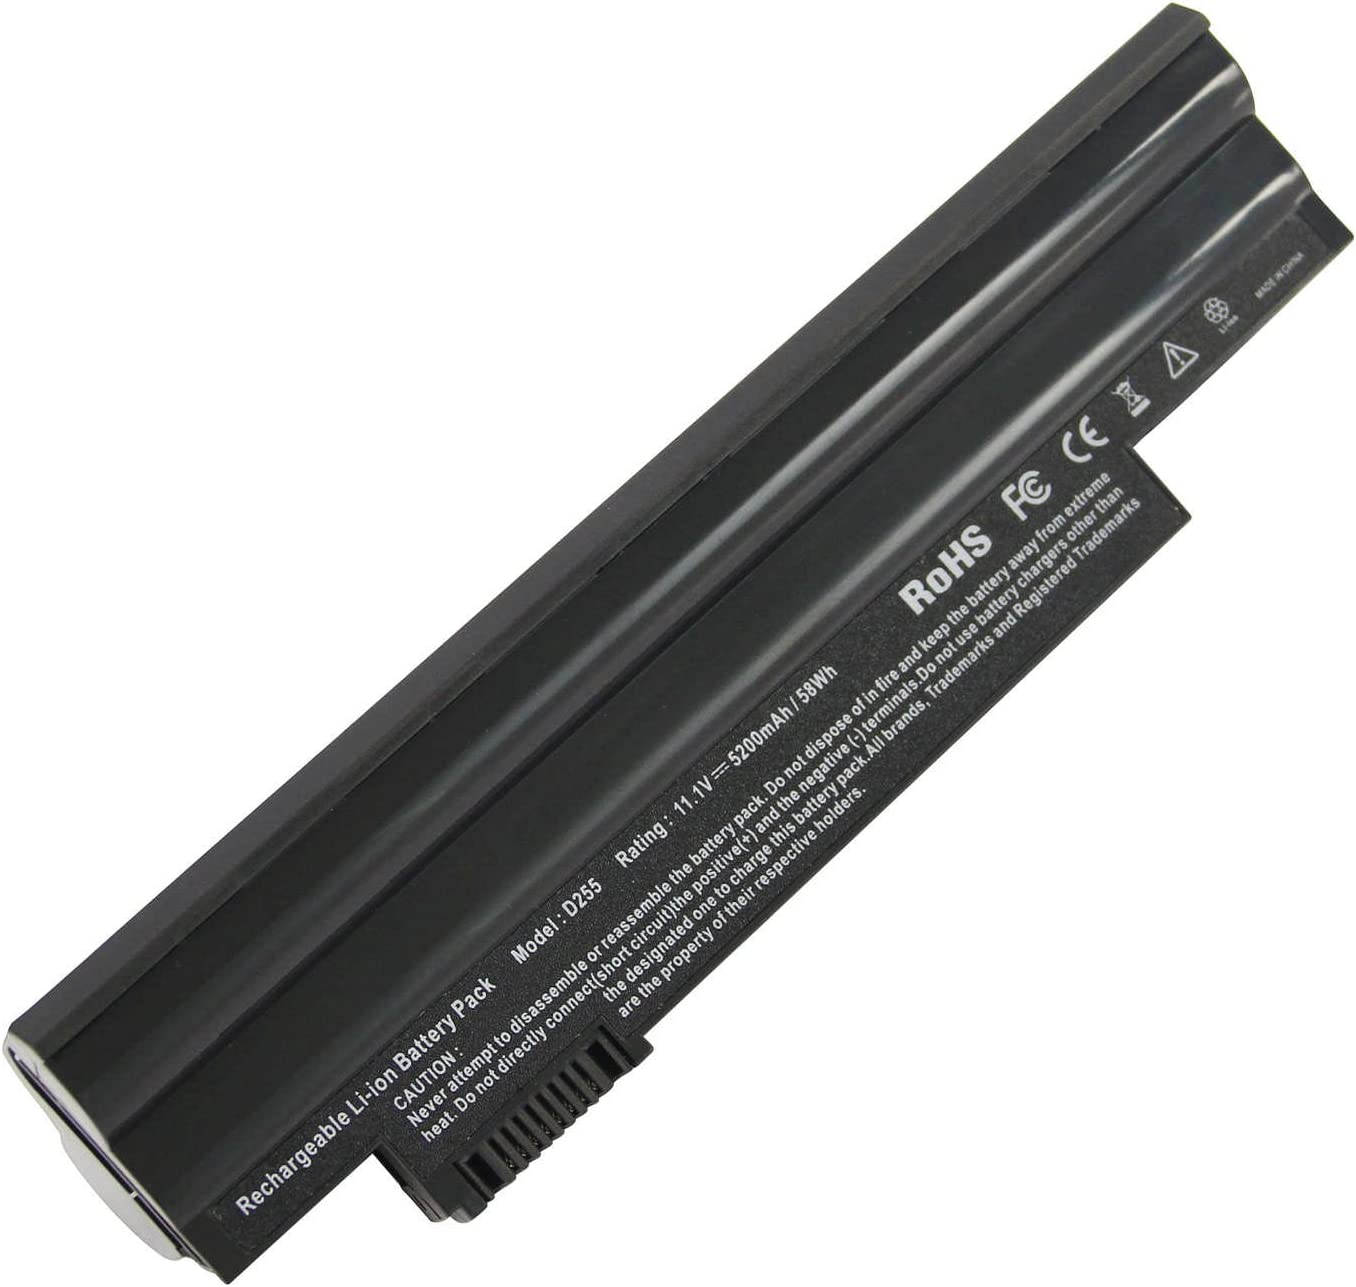 AL10A31 Battery for Acer Aspire One D255 D260 722 Netbook Battery AL10A31 AL10B31 AL10BW AL10G31 BT.00603.121 LC.BTP00.